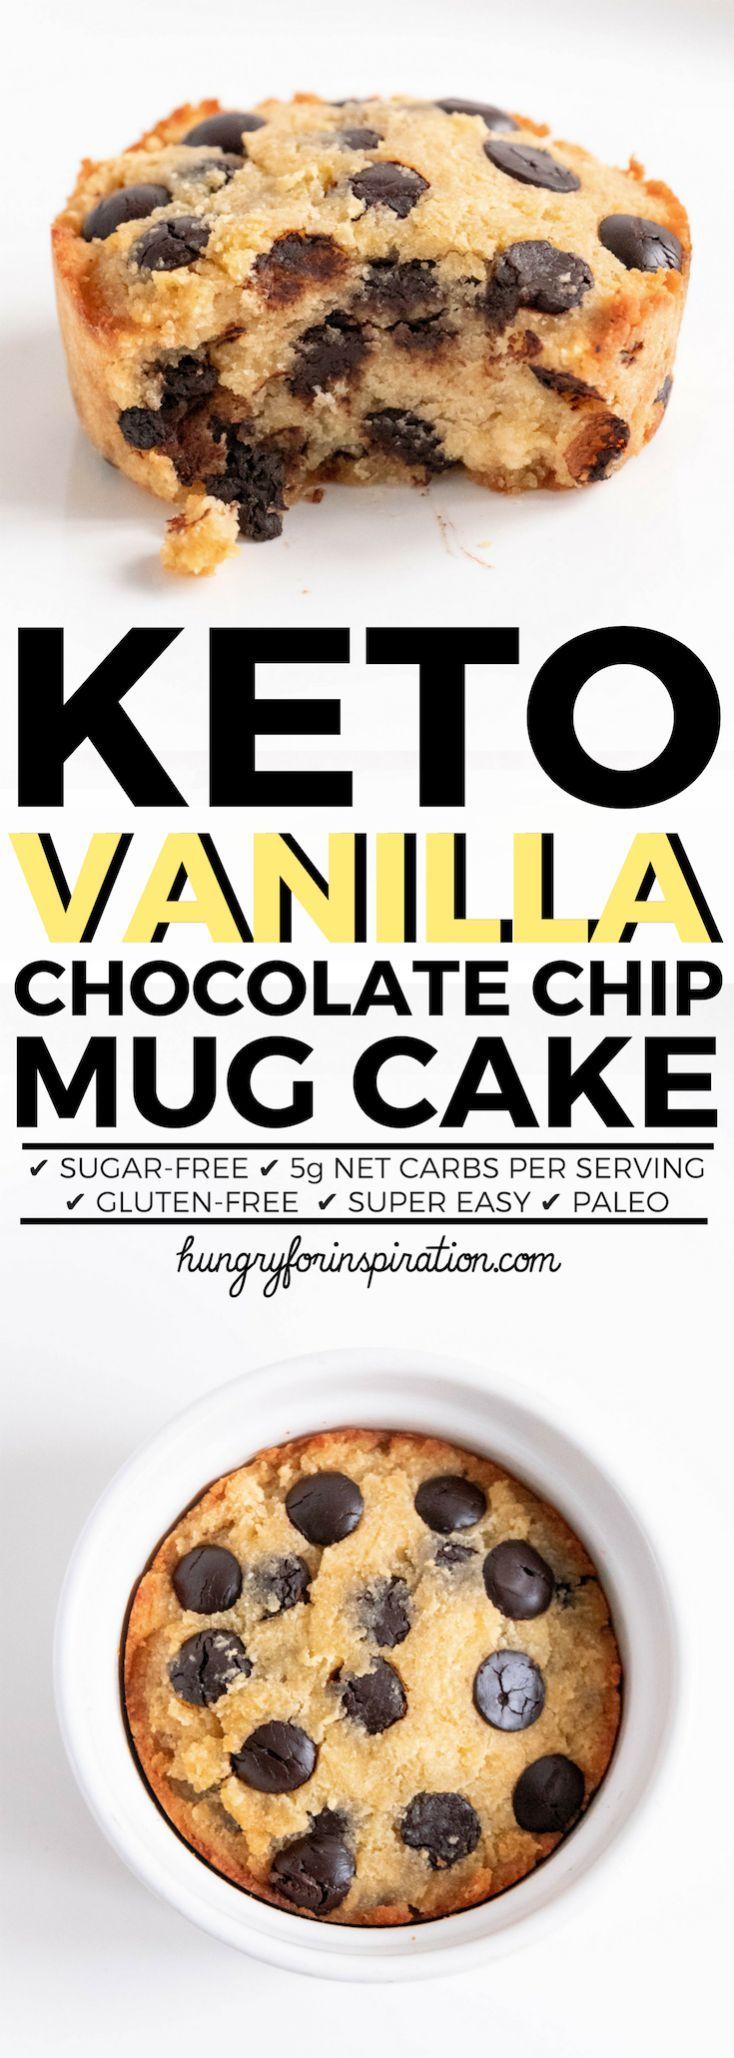 Easy Vanilla Chocolate Chip Keto Mug Cake with only 5g net carbs per serving! Easy Keto Dessert Or Keto Snack to make when sweet cravings strike you! Healthy, delicious, gluten-free! #keto #ketodessert #ketosnacks #ketorecipes #ketodiet #ketogenic #ketogenicdiet #lowcarb #lowcarbrecipes #lowcarbrecipes #lowcarbdiet #lowcarbdessert #lowcarbsnacks #mugcake #ketodessert